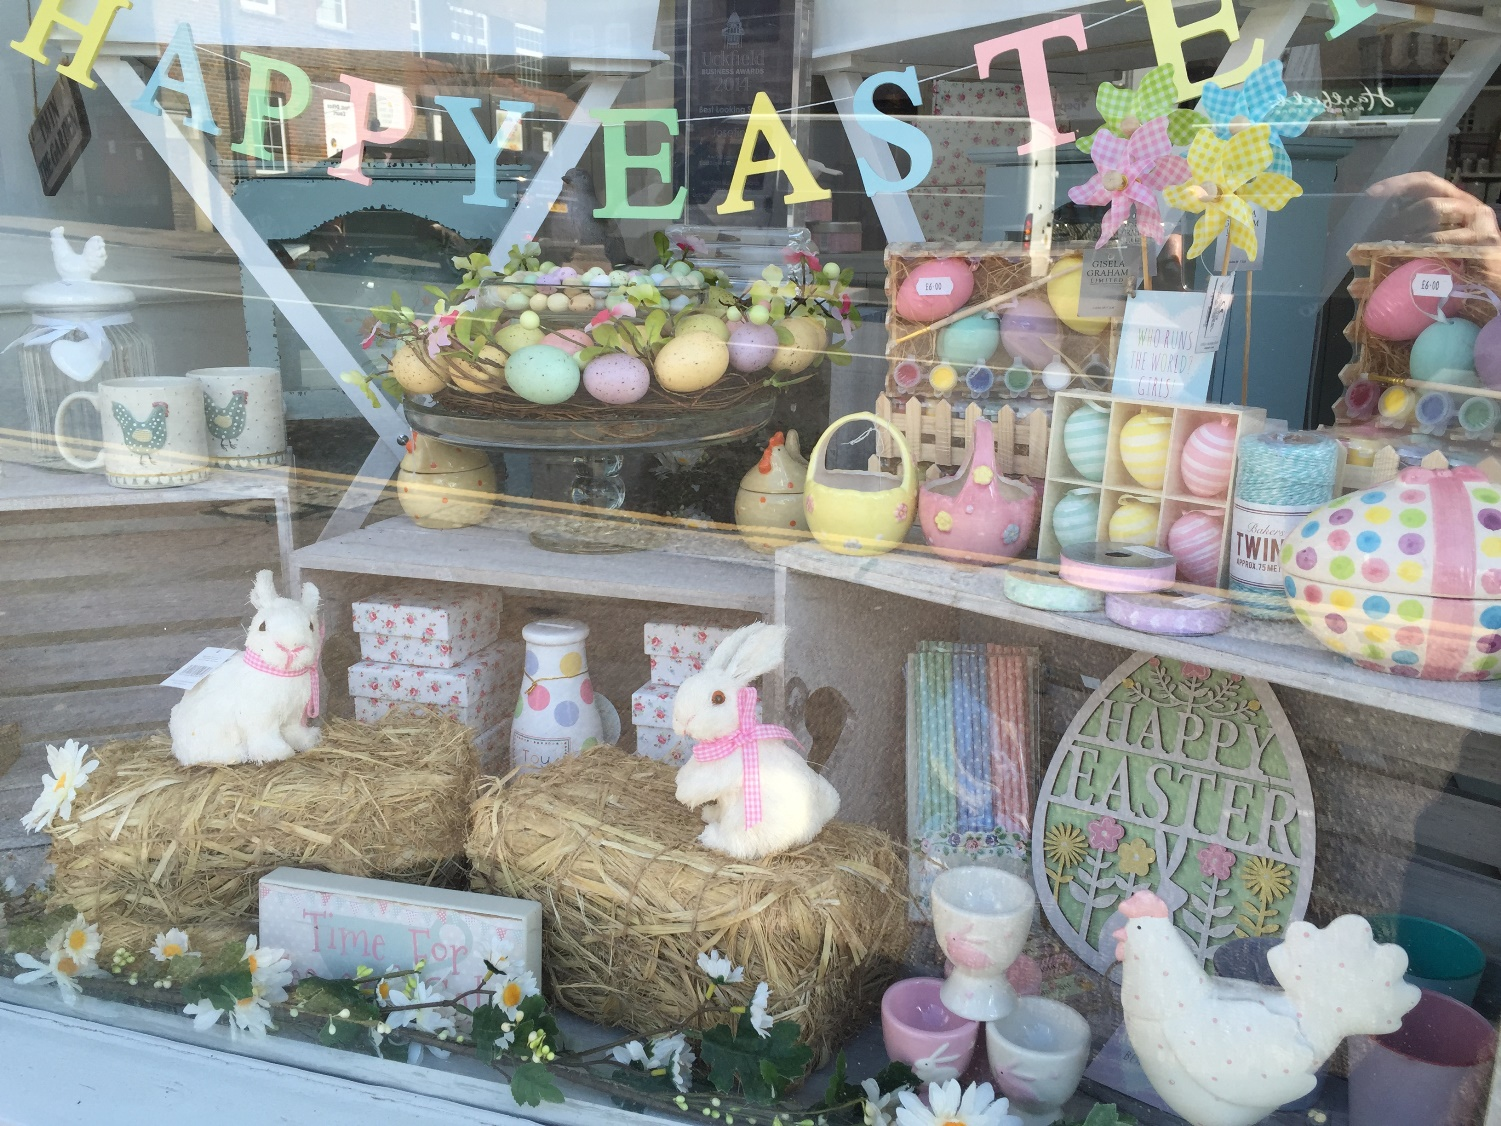 The happy Easter banner in colored letters, the eggs and the bunnies are a good decoration for the window display.